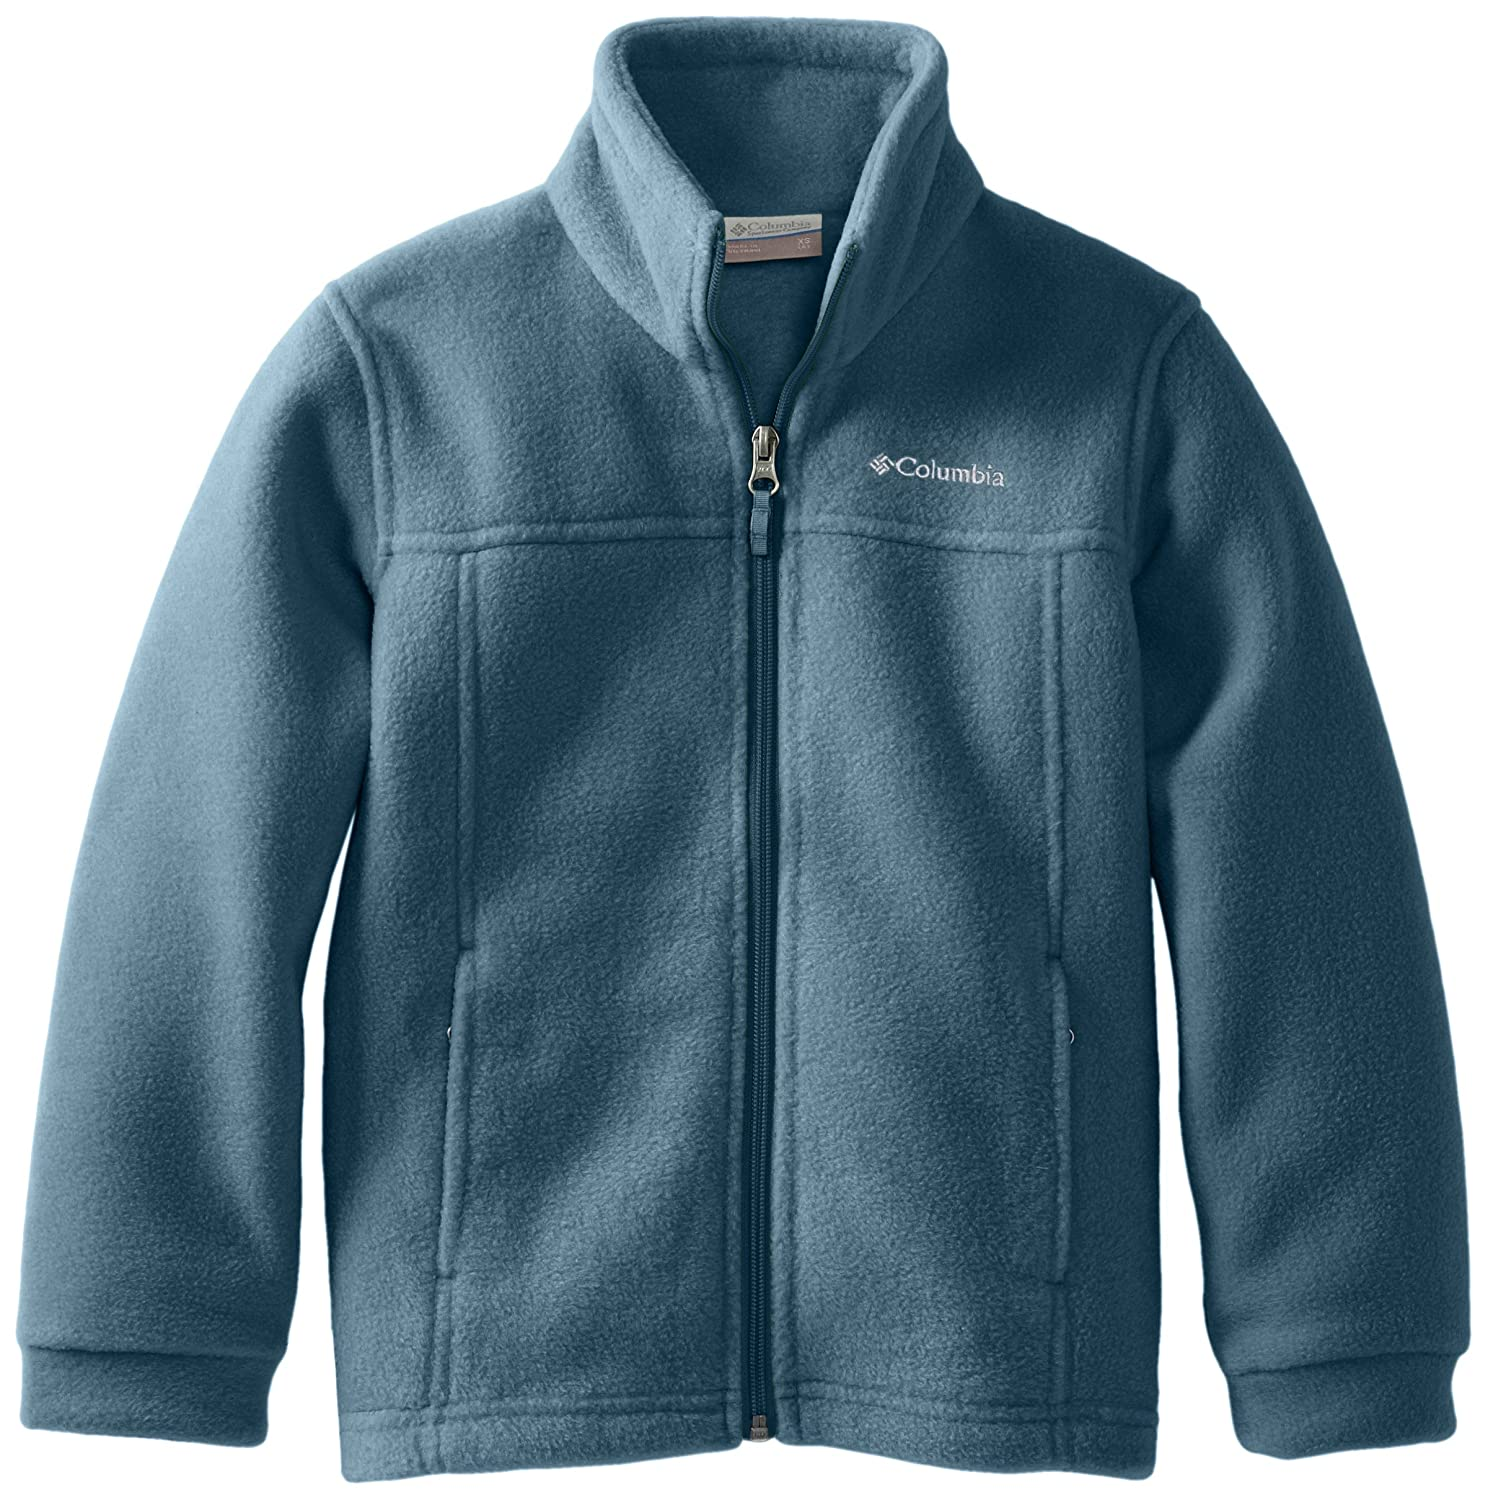 Columbia Boys' Steens MT II Fleece Jacket Columbia Sportswear WD6760-359-2T